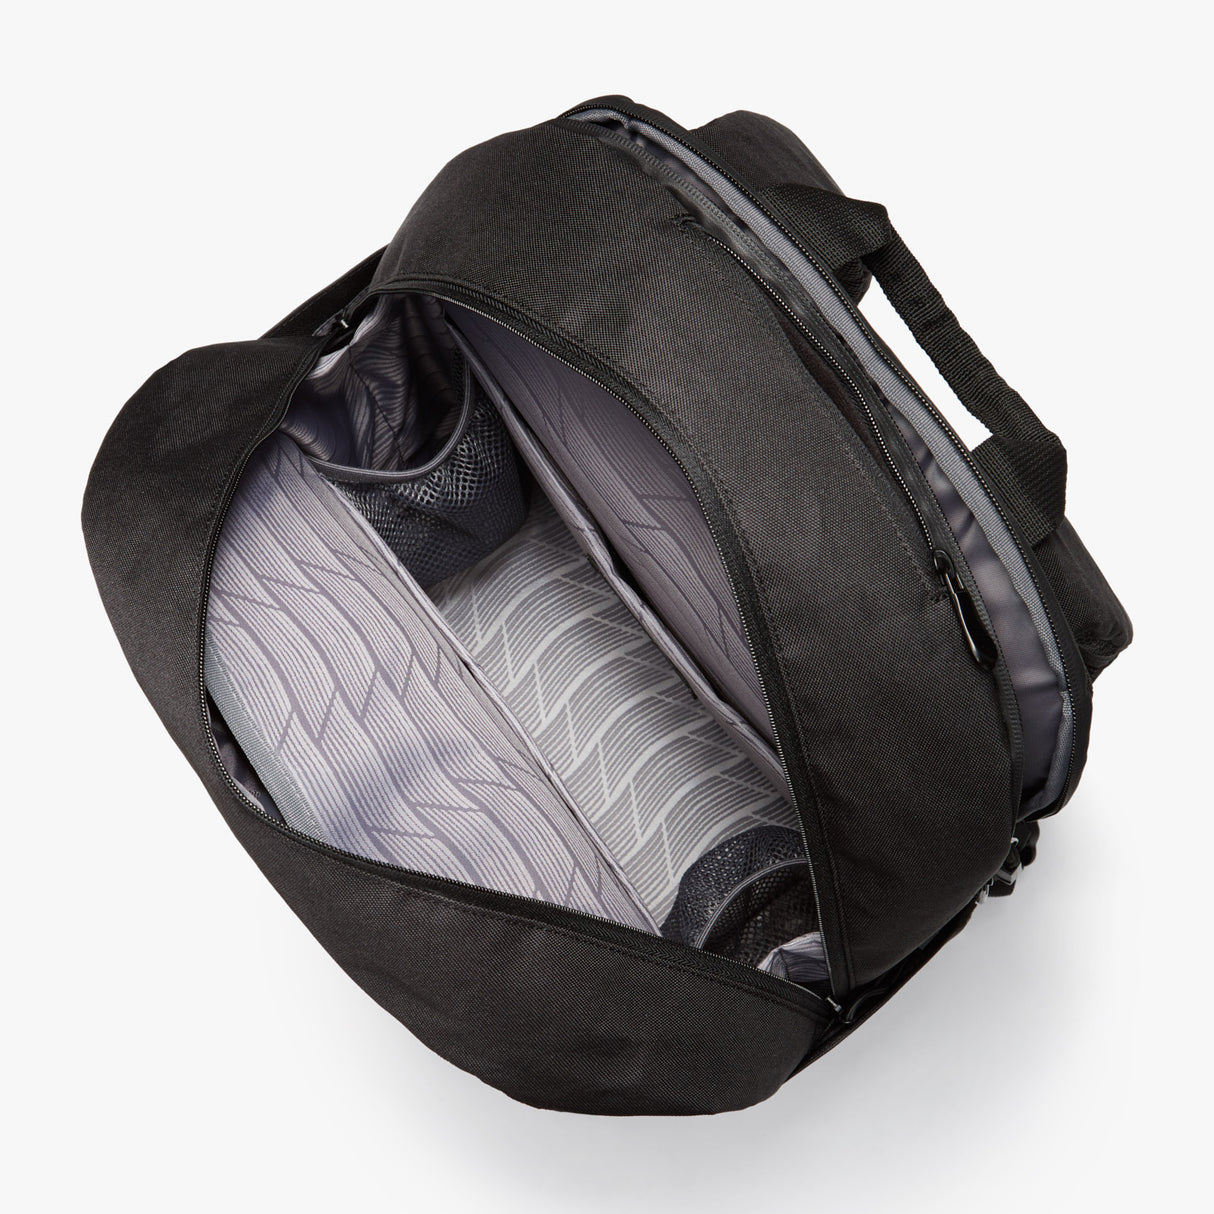 Interior Empty - Hanover Deluxe 2 - 600D Recycled Poly - Onyx - Backpack - Lo & Sons